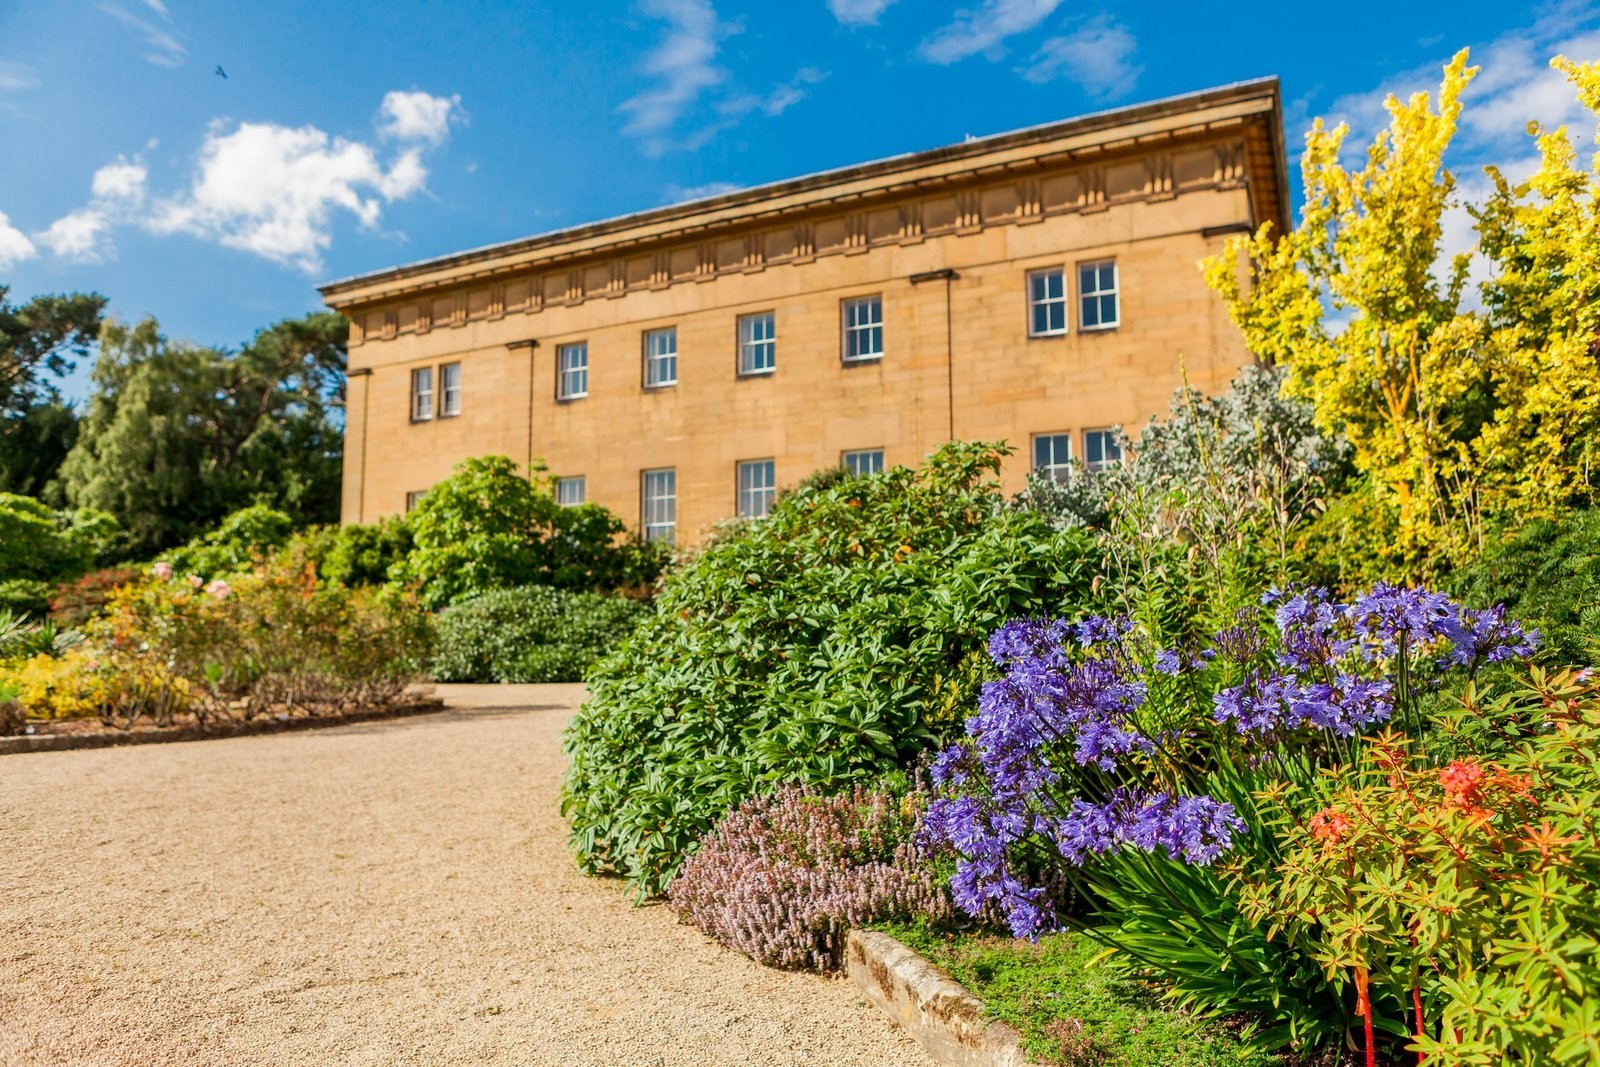 A picture of Belsay Hall